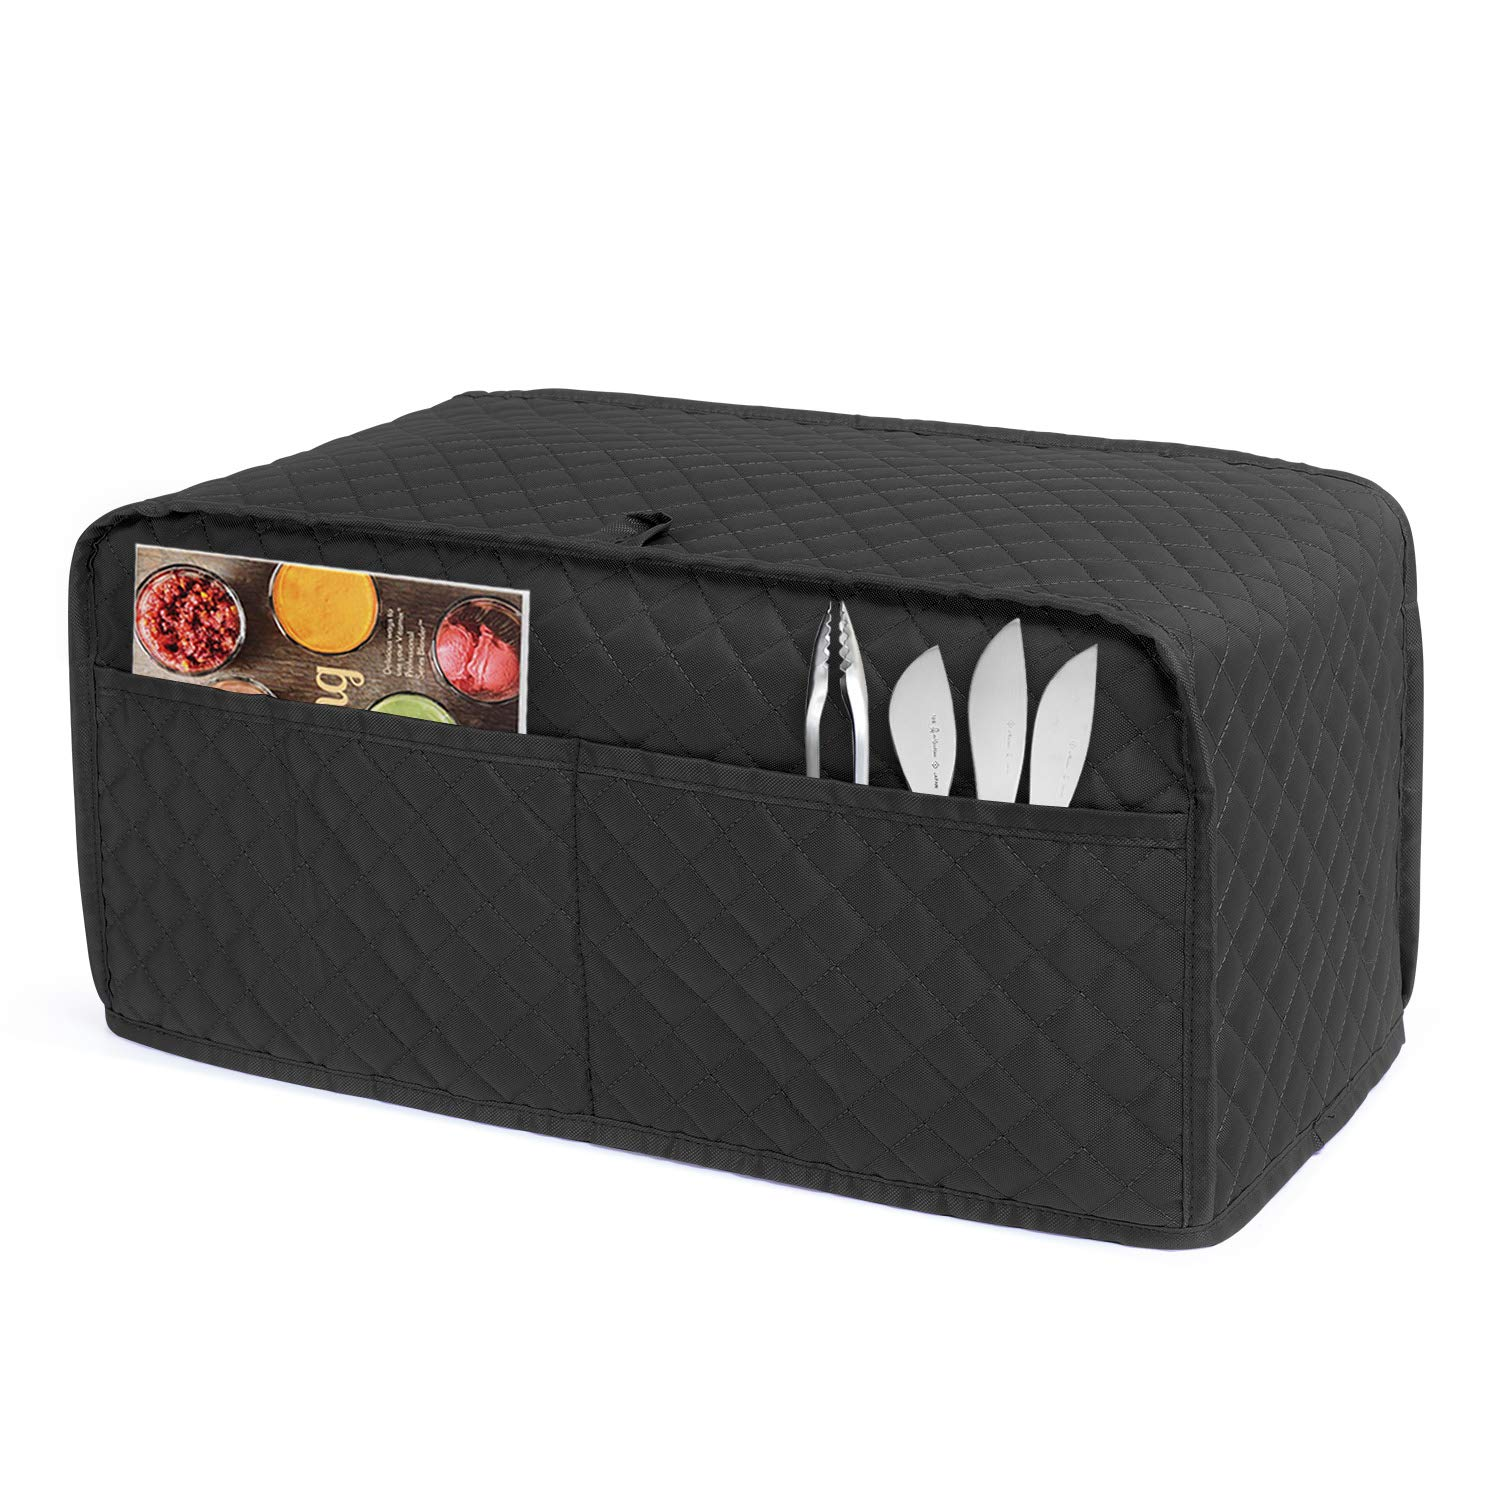 Luxja Toaster Cover for 4 Slice Long Slot Toaster (15.5 x 7.5 x 8 inches), Toaster Cover with 2 Pockets (Fits for Most 4 Slice Long Slot Toasters), Black (Quilted Fabric)